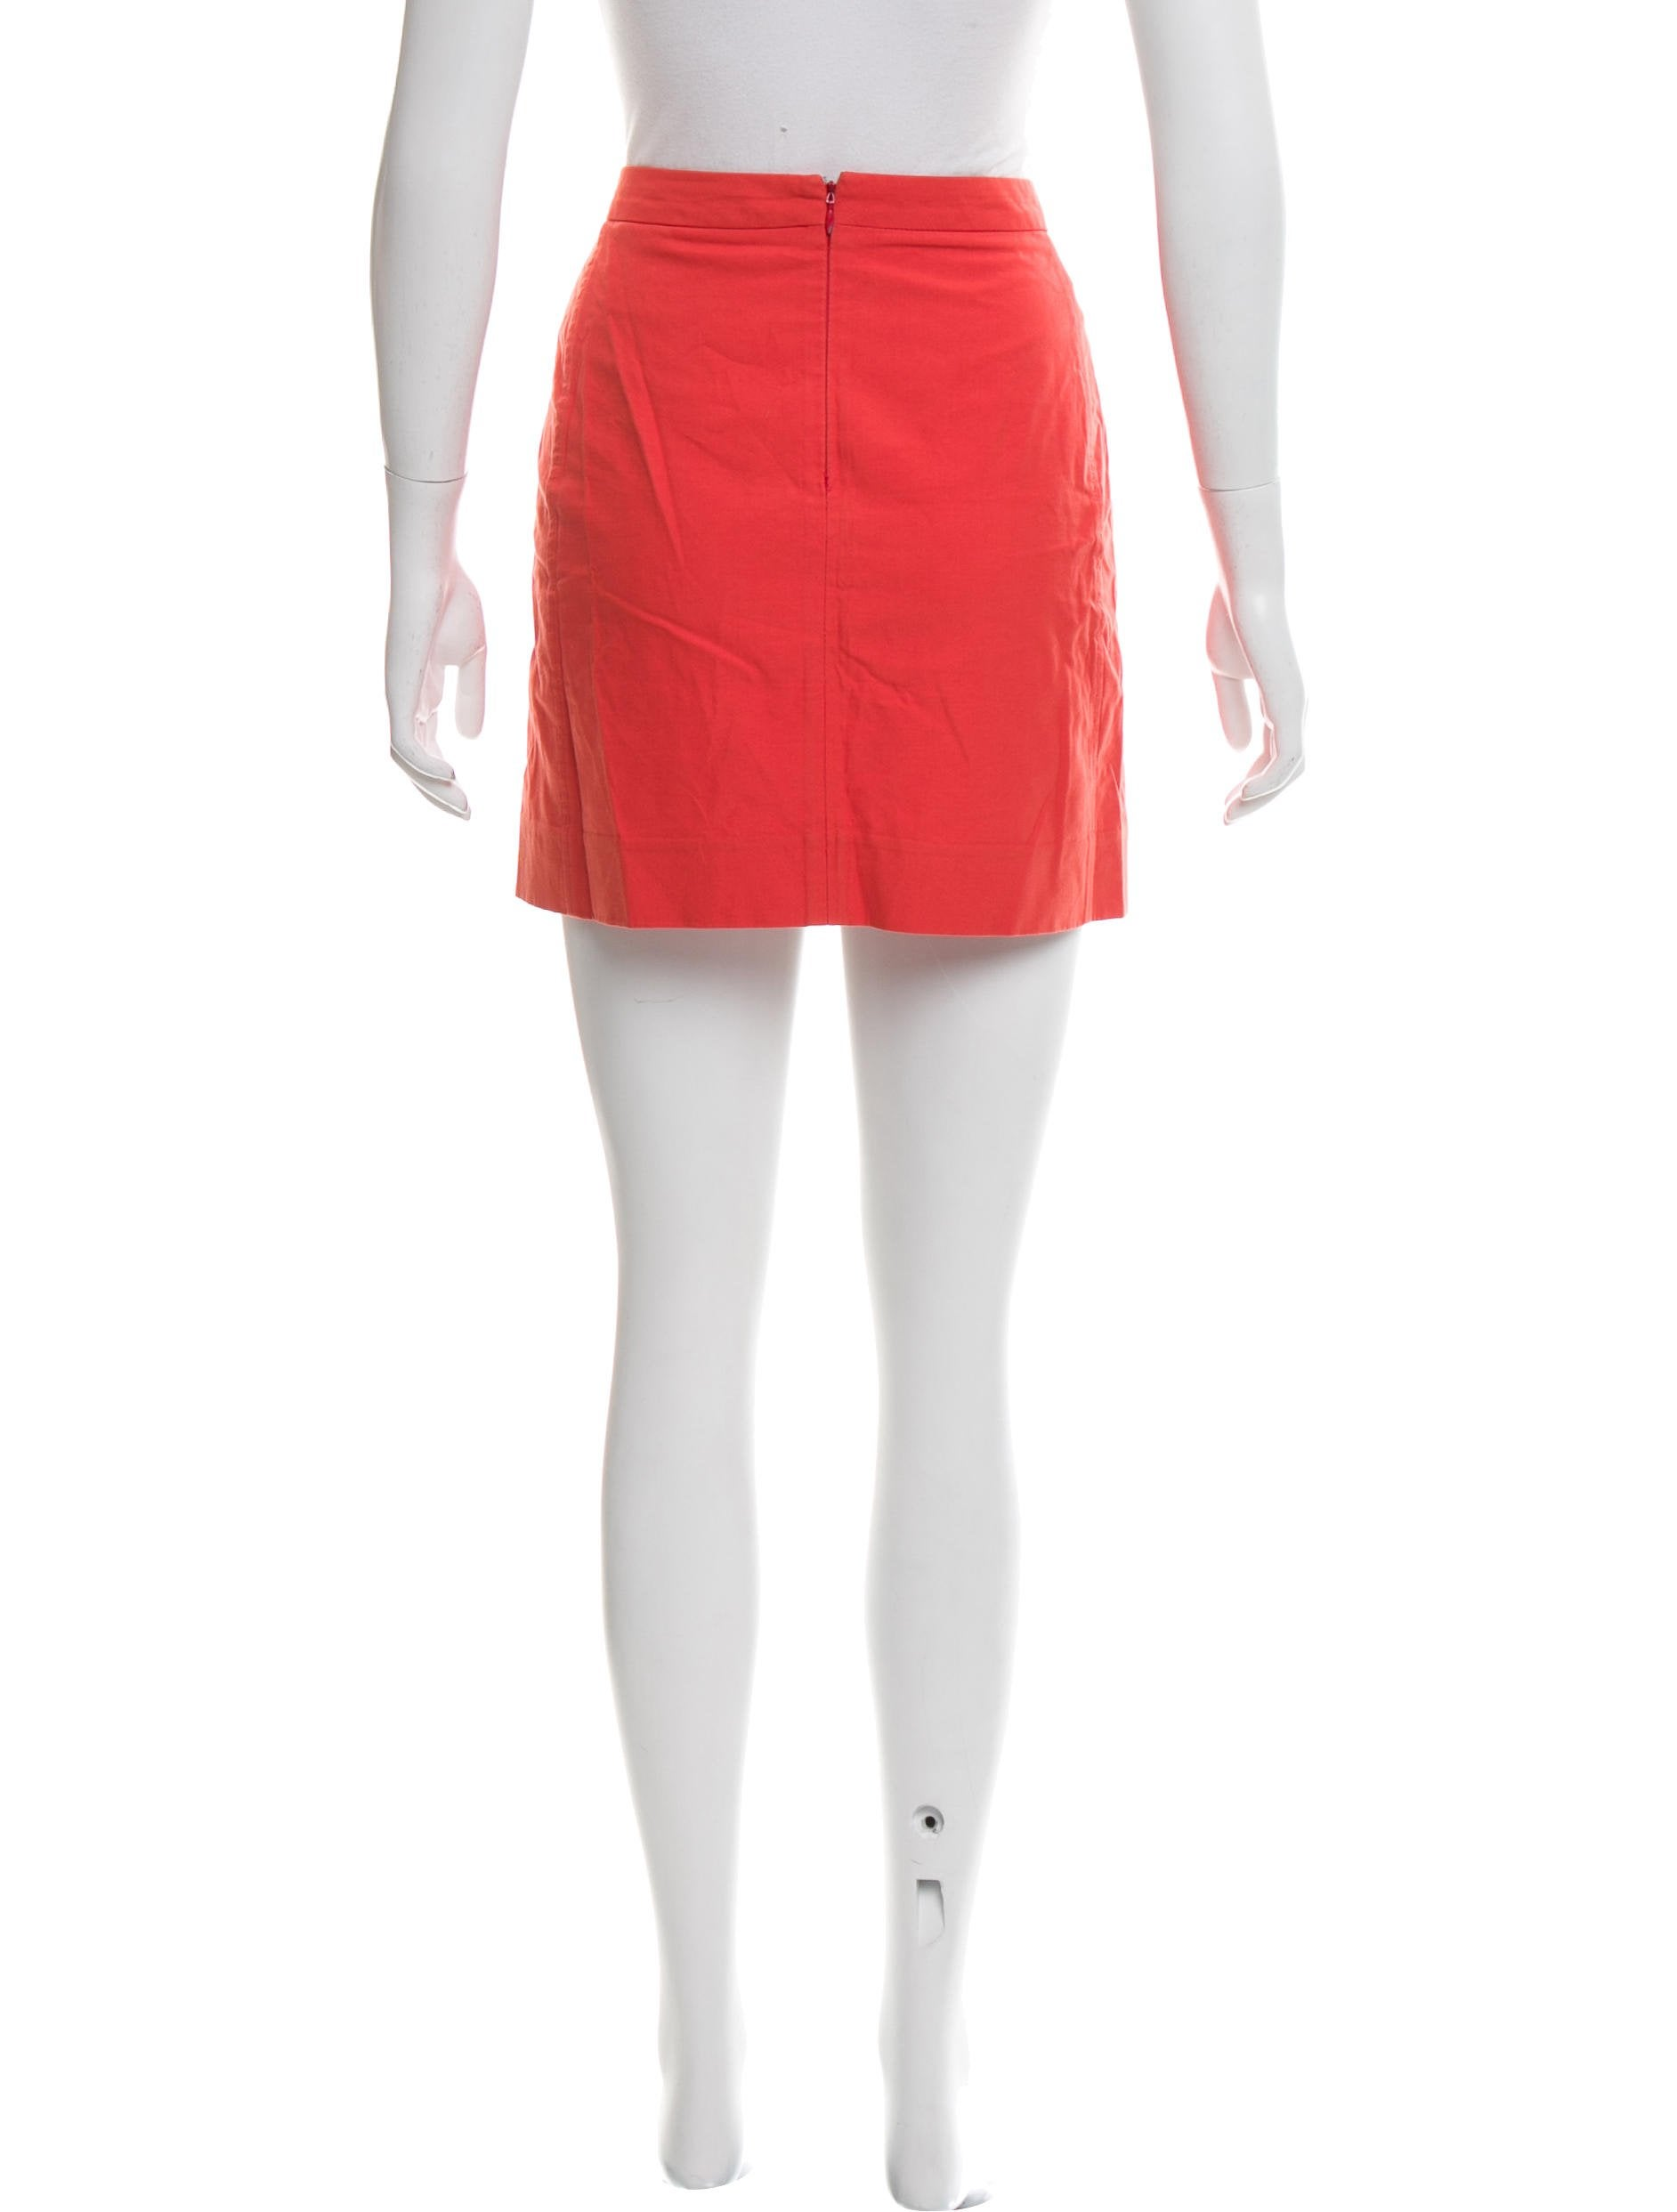 Balenciaga Zip-Up Mini Skirt - Clothing - BAL57318 | The RealReal